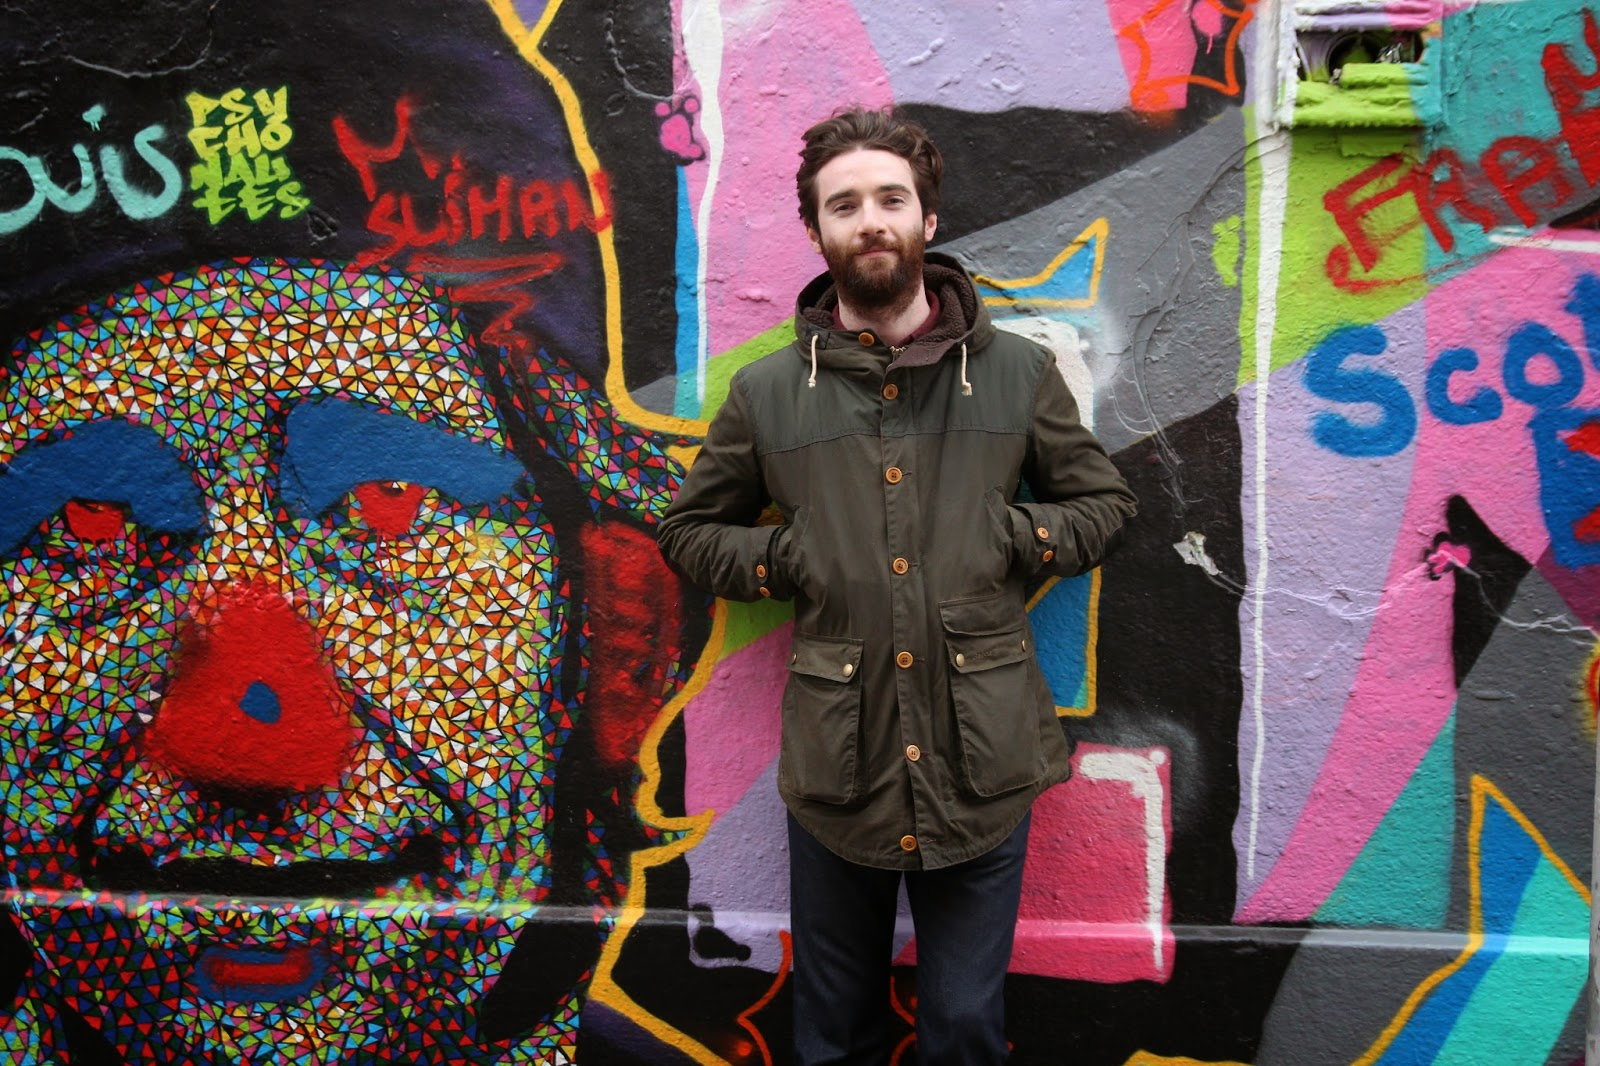 dublin, travel, street art, handsome, beard